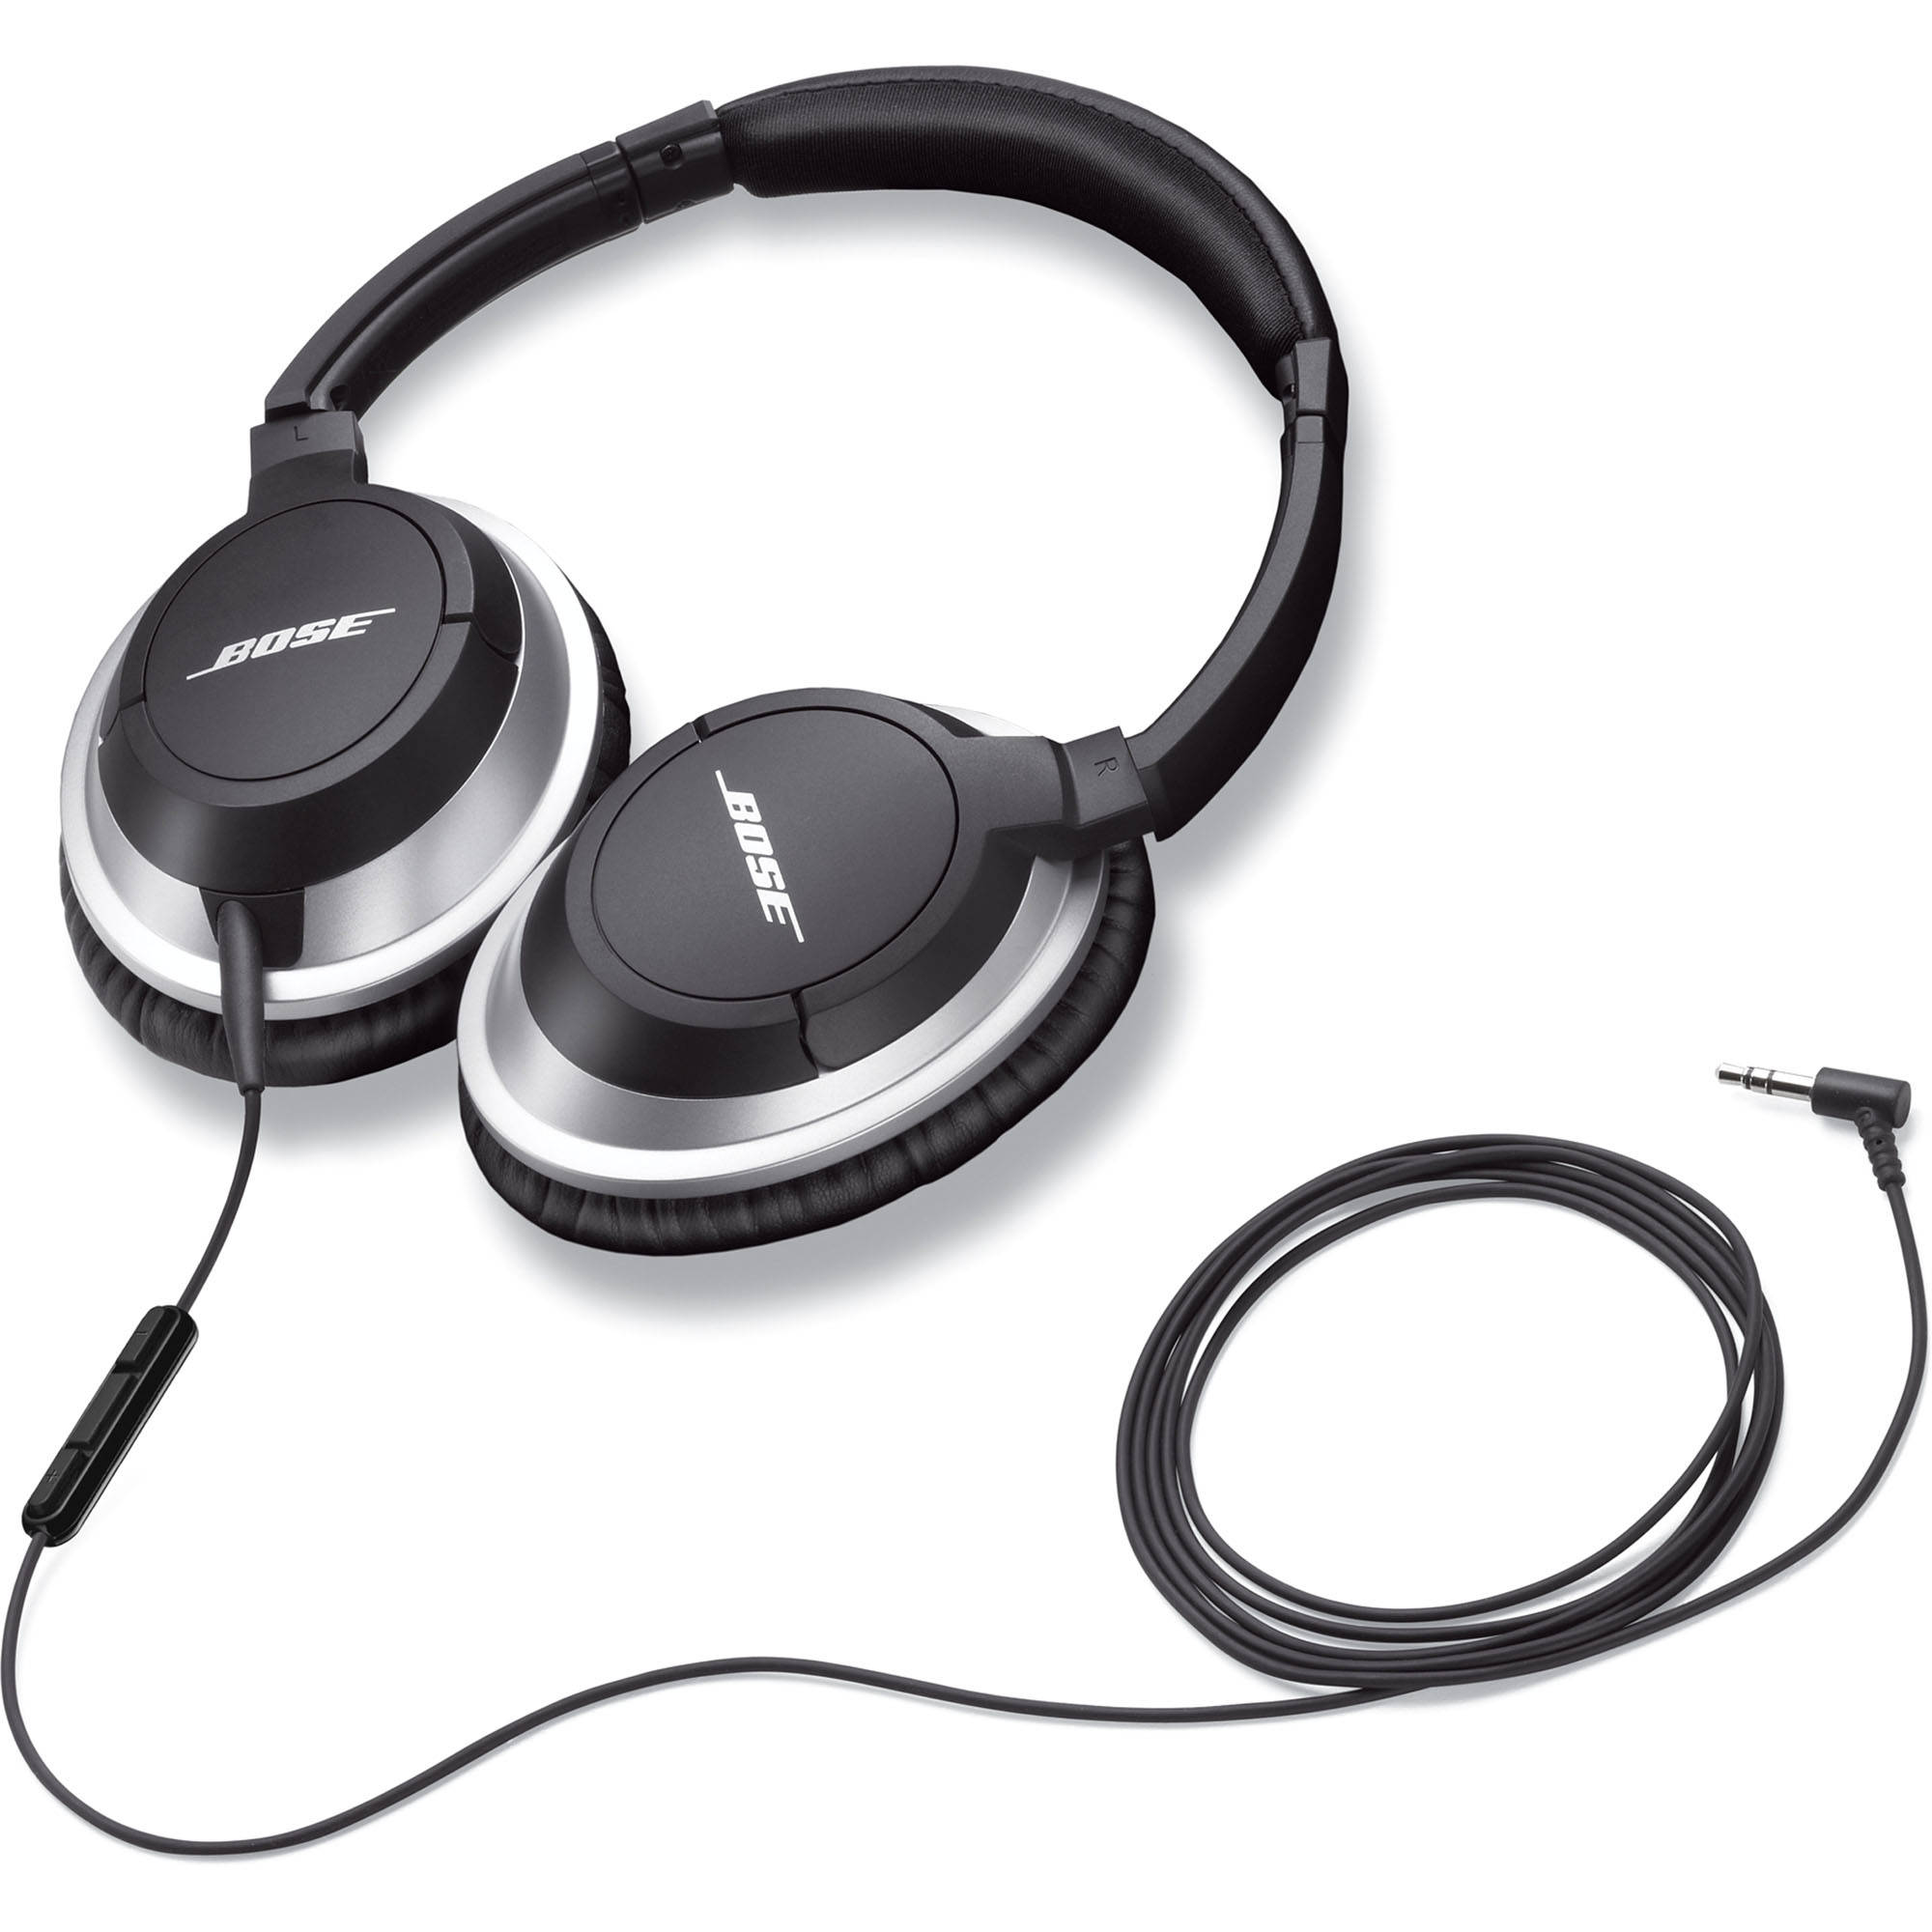 Bose AE2i Around-Ear Audio Headphones with Mic and Remote (Black)